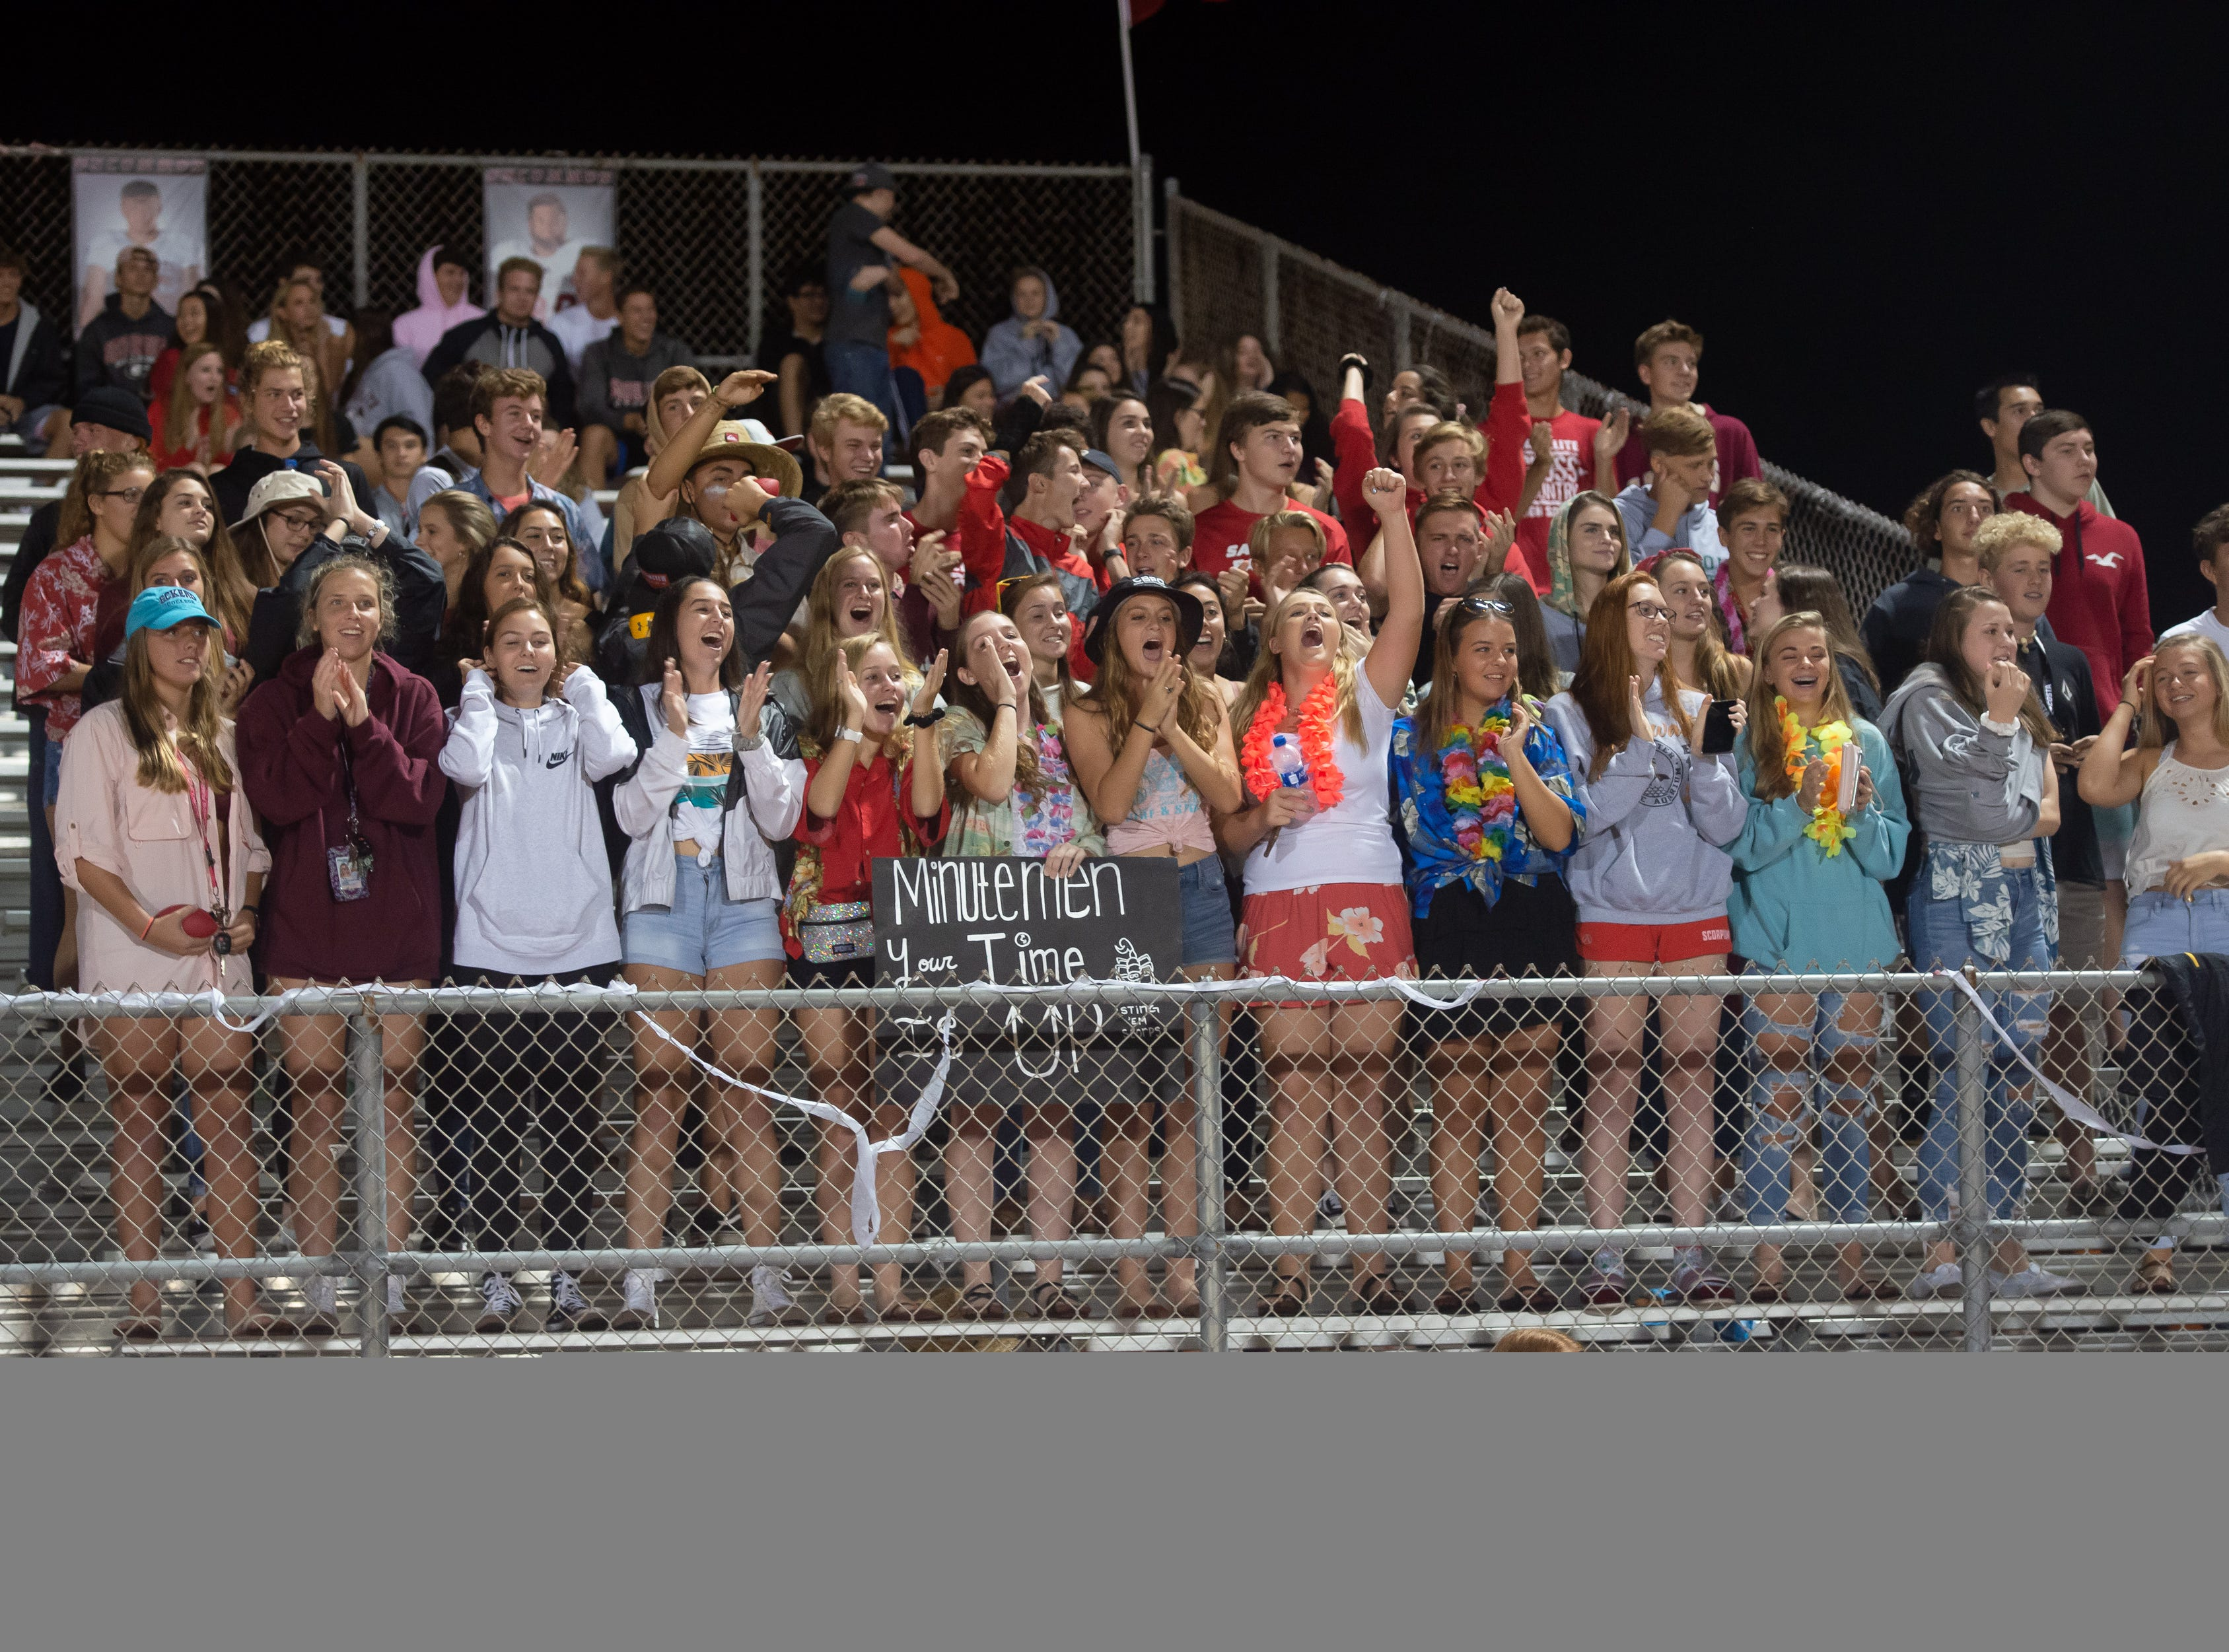 Satellite High fans cheer during the game against Cocoa Beach.